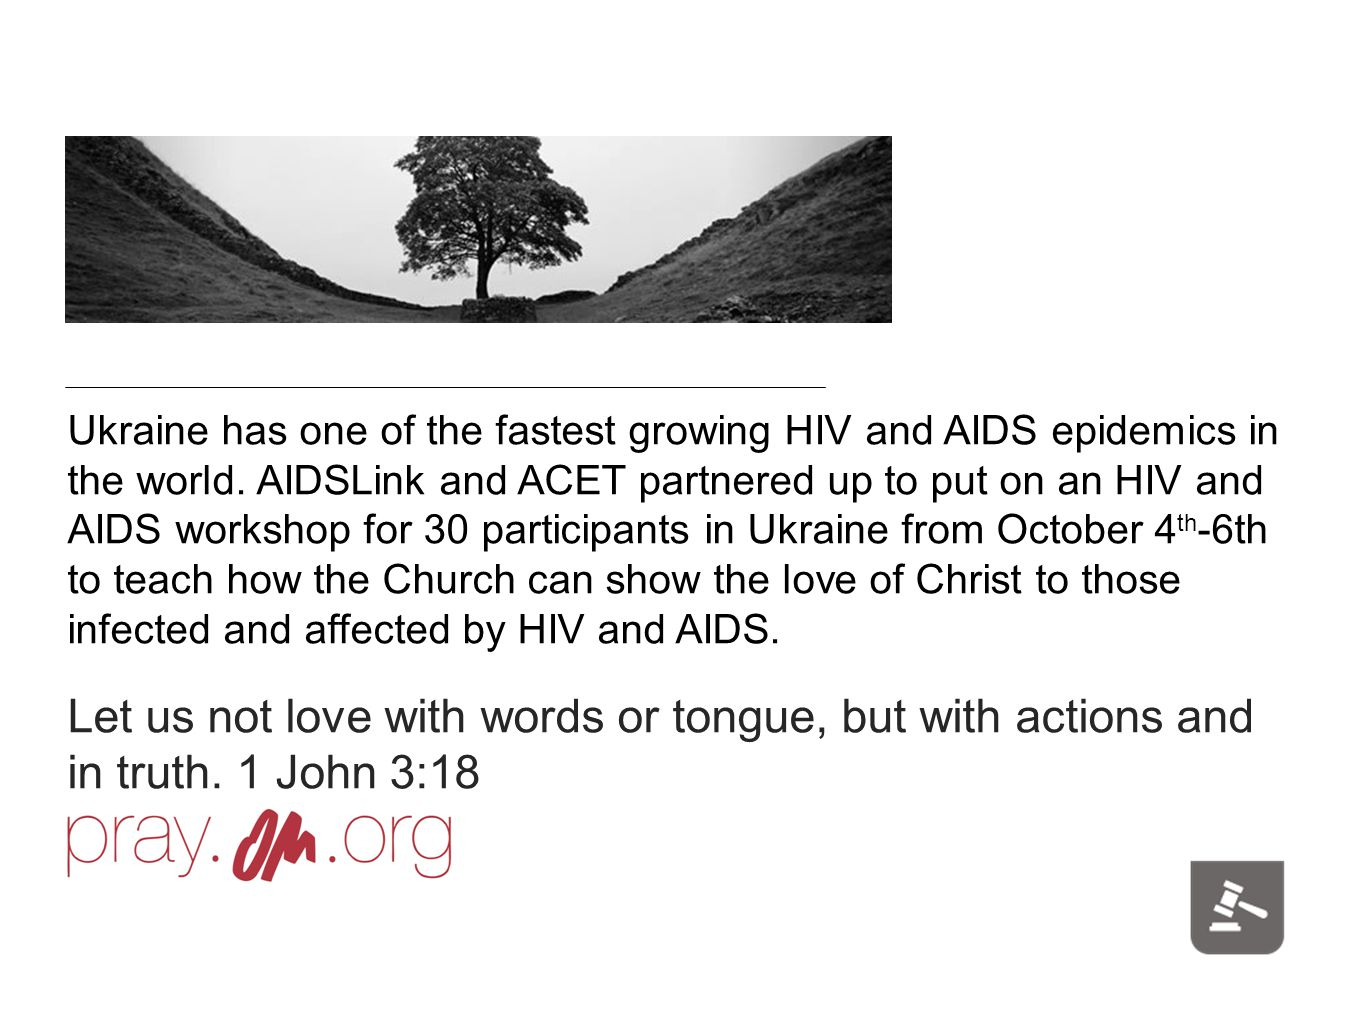 Ukraine has one of the fastest growing HIV and AIDS epidemics in the world.